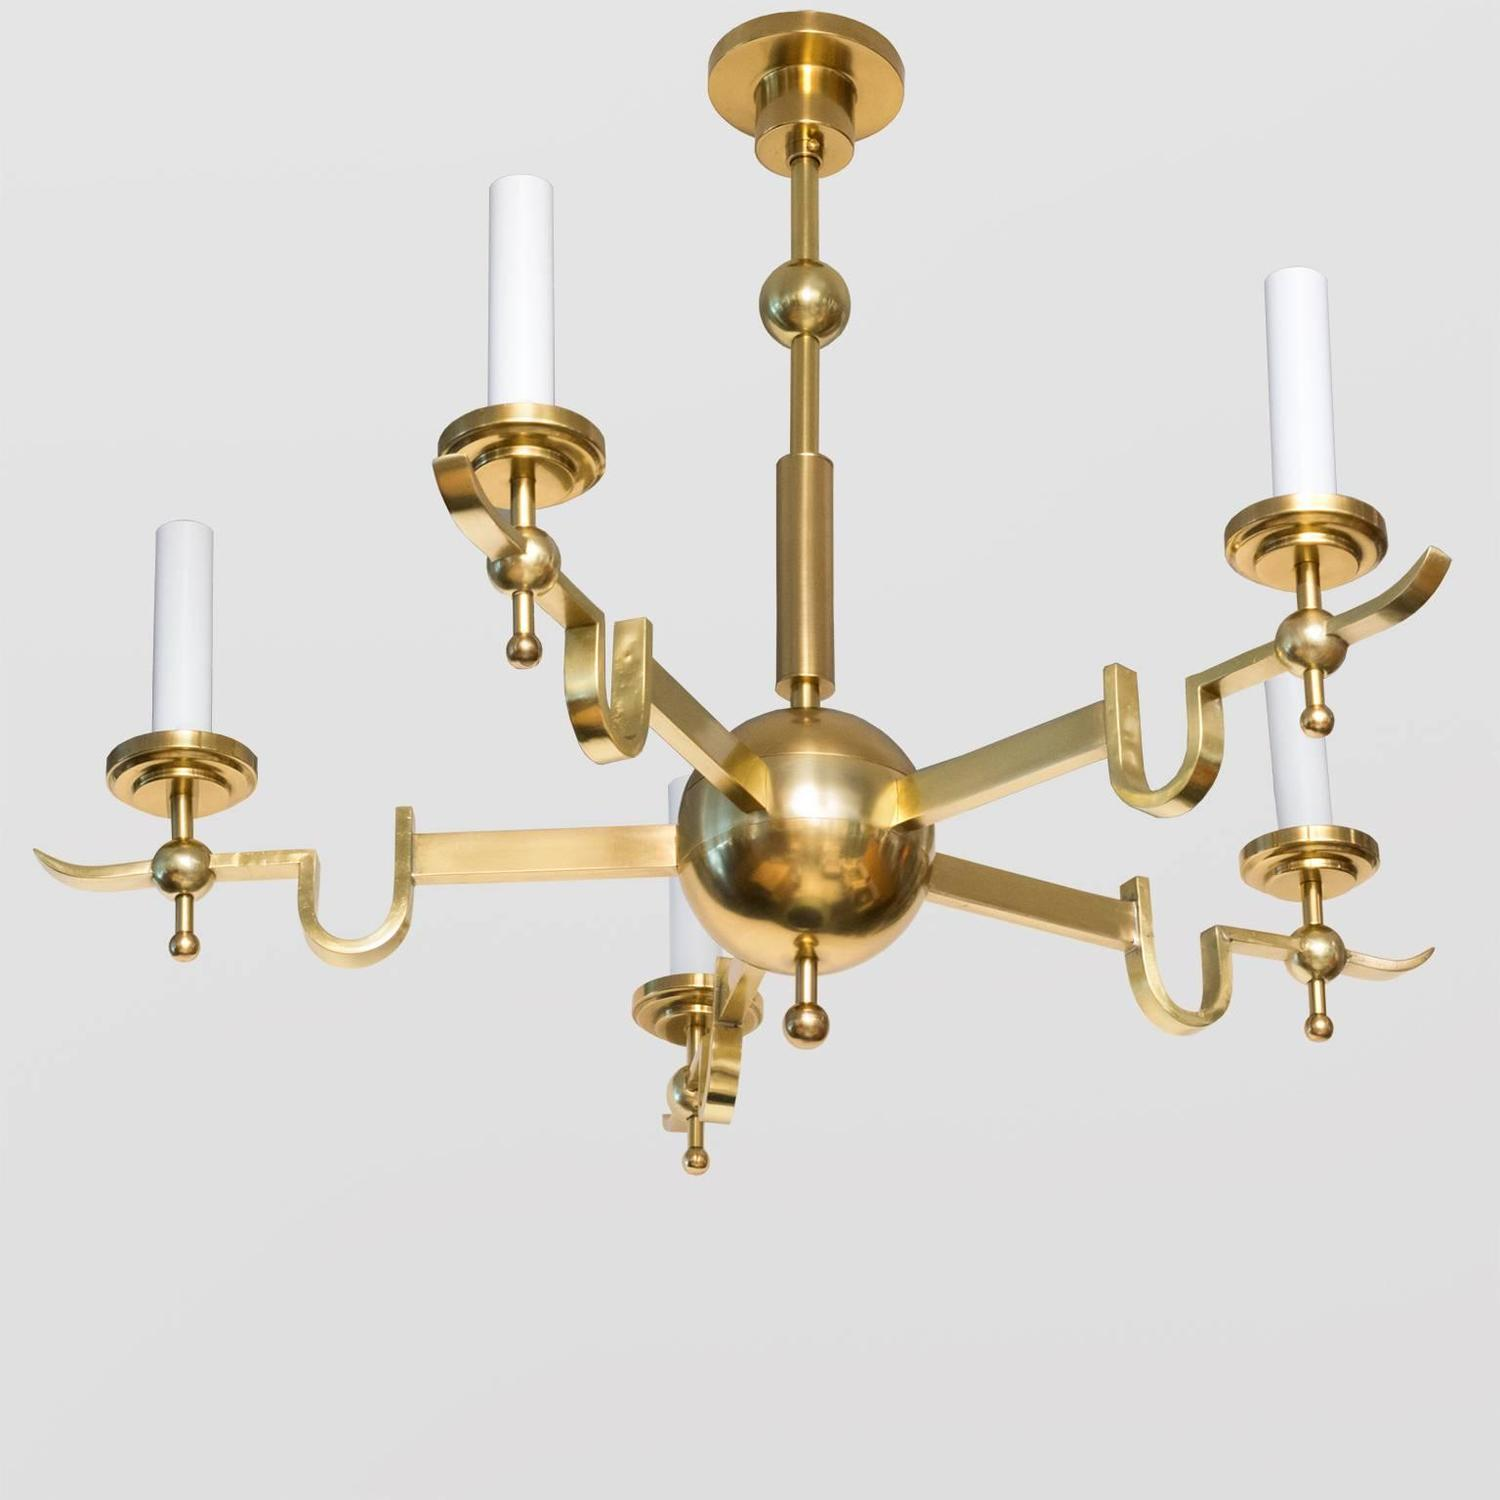 Modern Arm Chandelier: Scandinavian Modern Five-Arm Polished Brass Chandelier